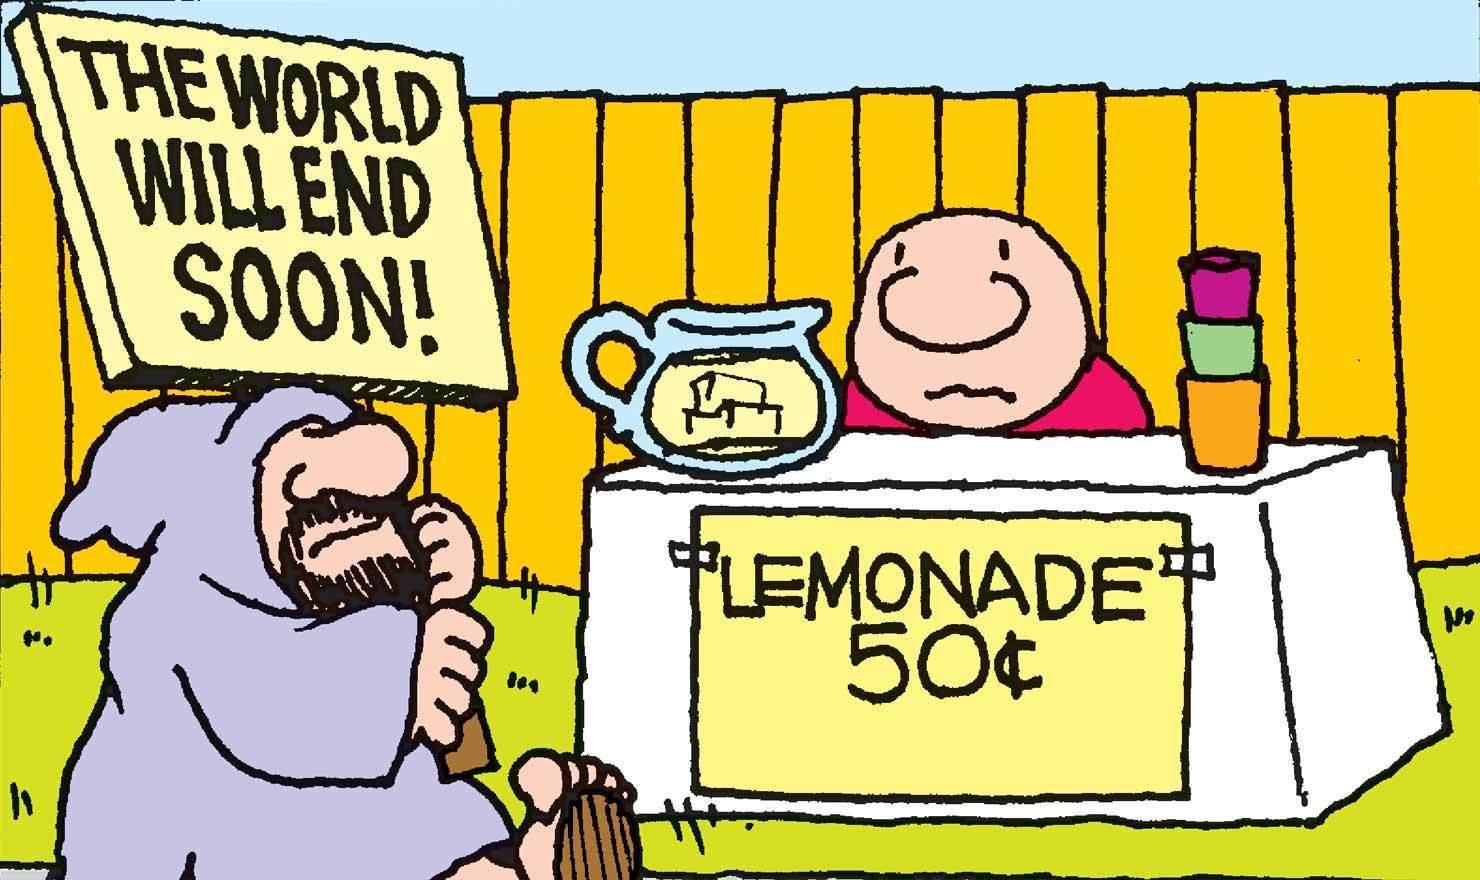 12 Sweetly Sour Comics For Lemonade Day